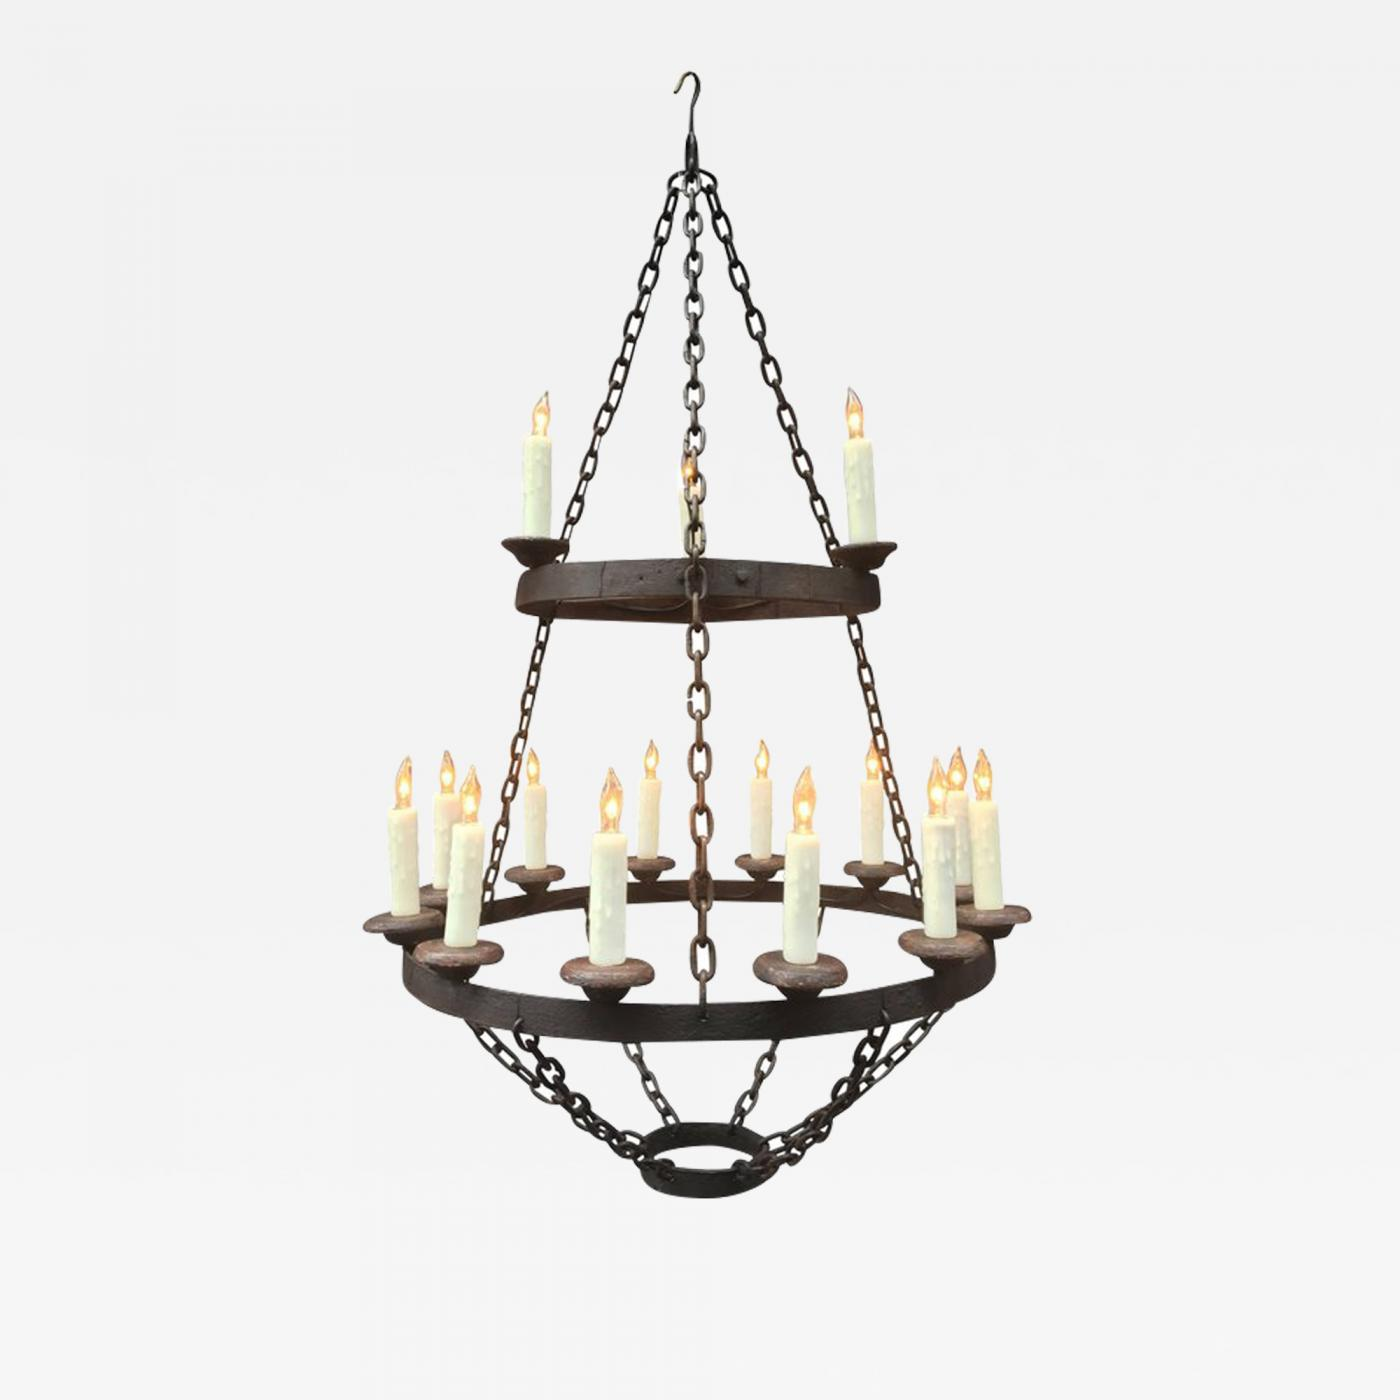 Listings Furniture Lighting Chandeliers And Pendants 18th Century